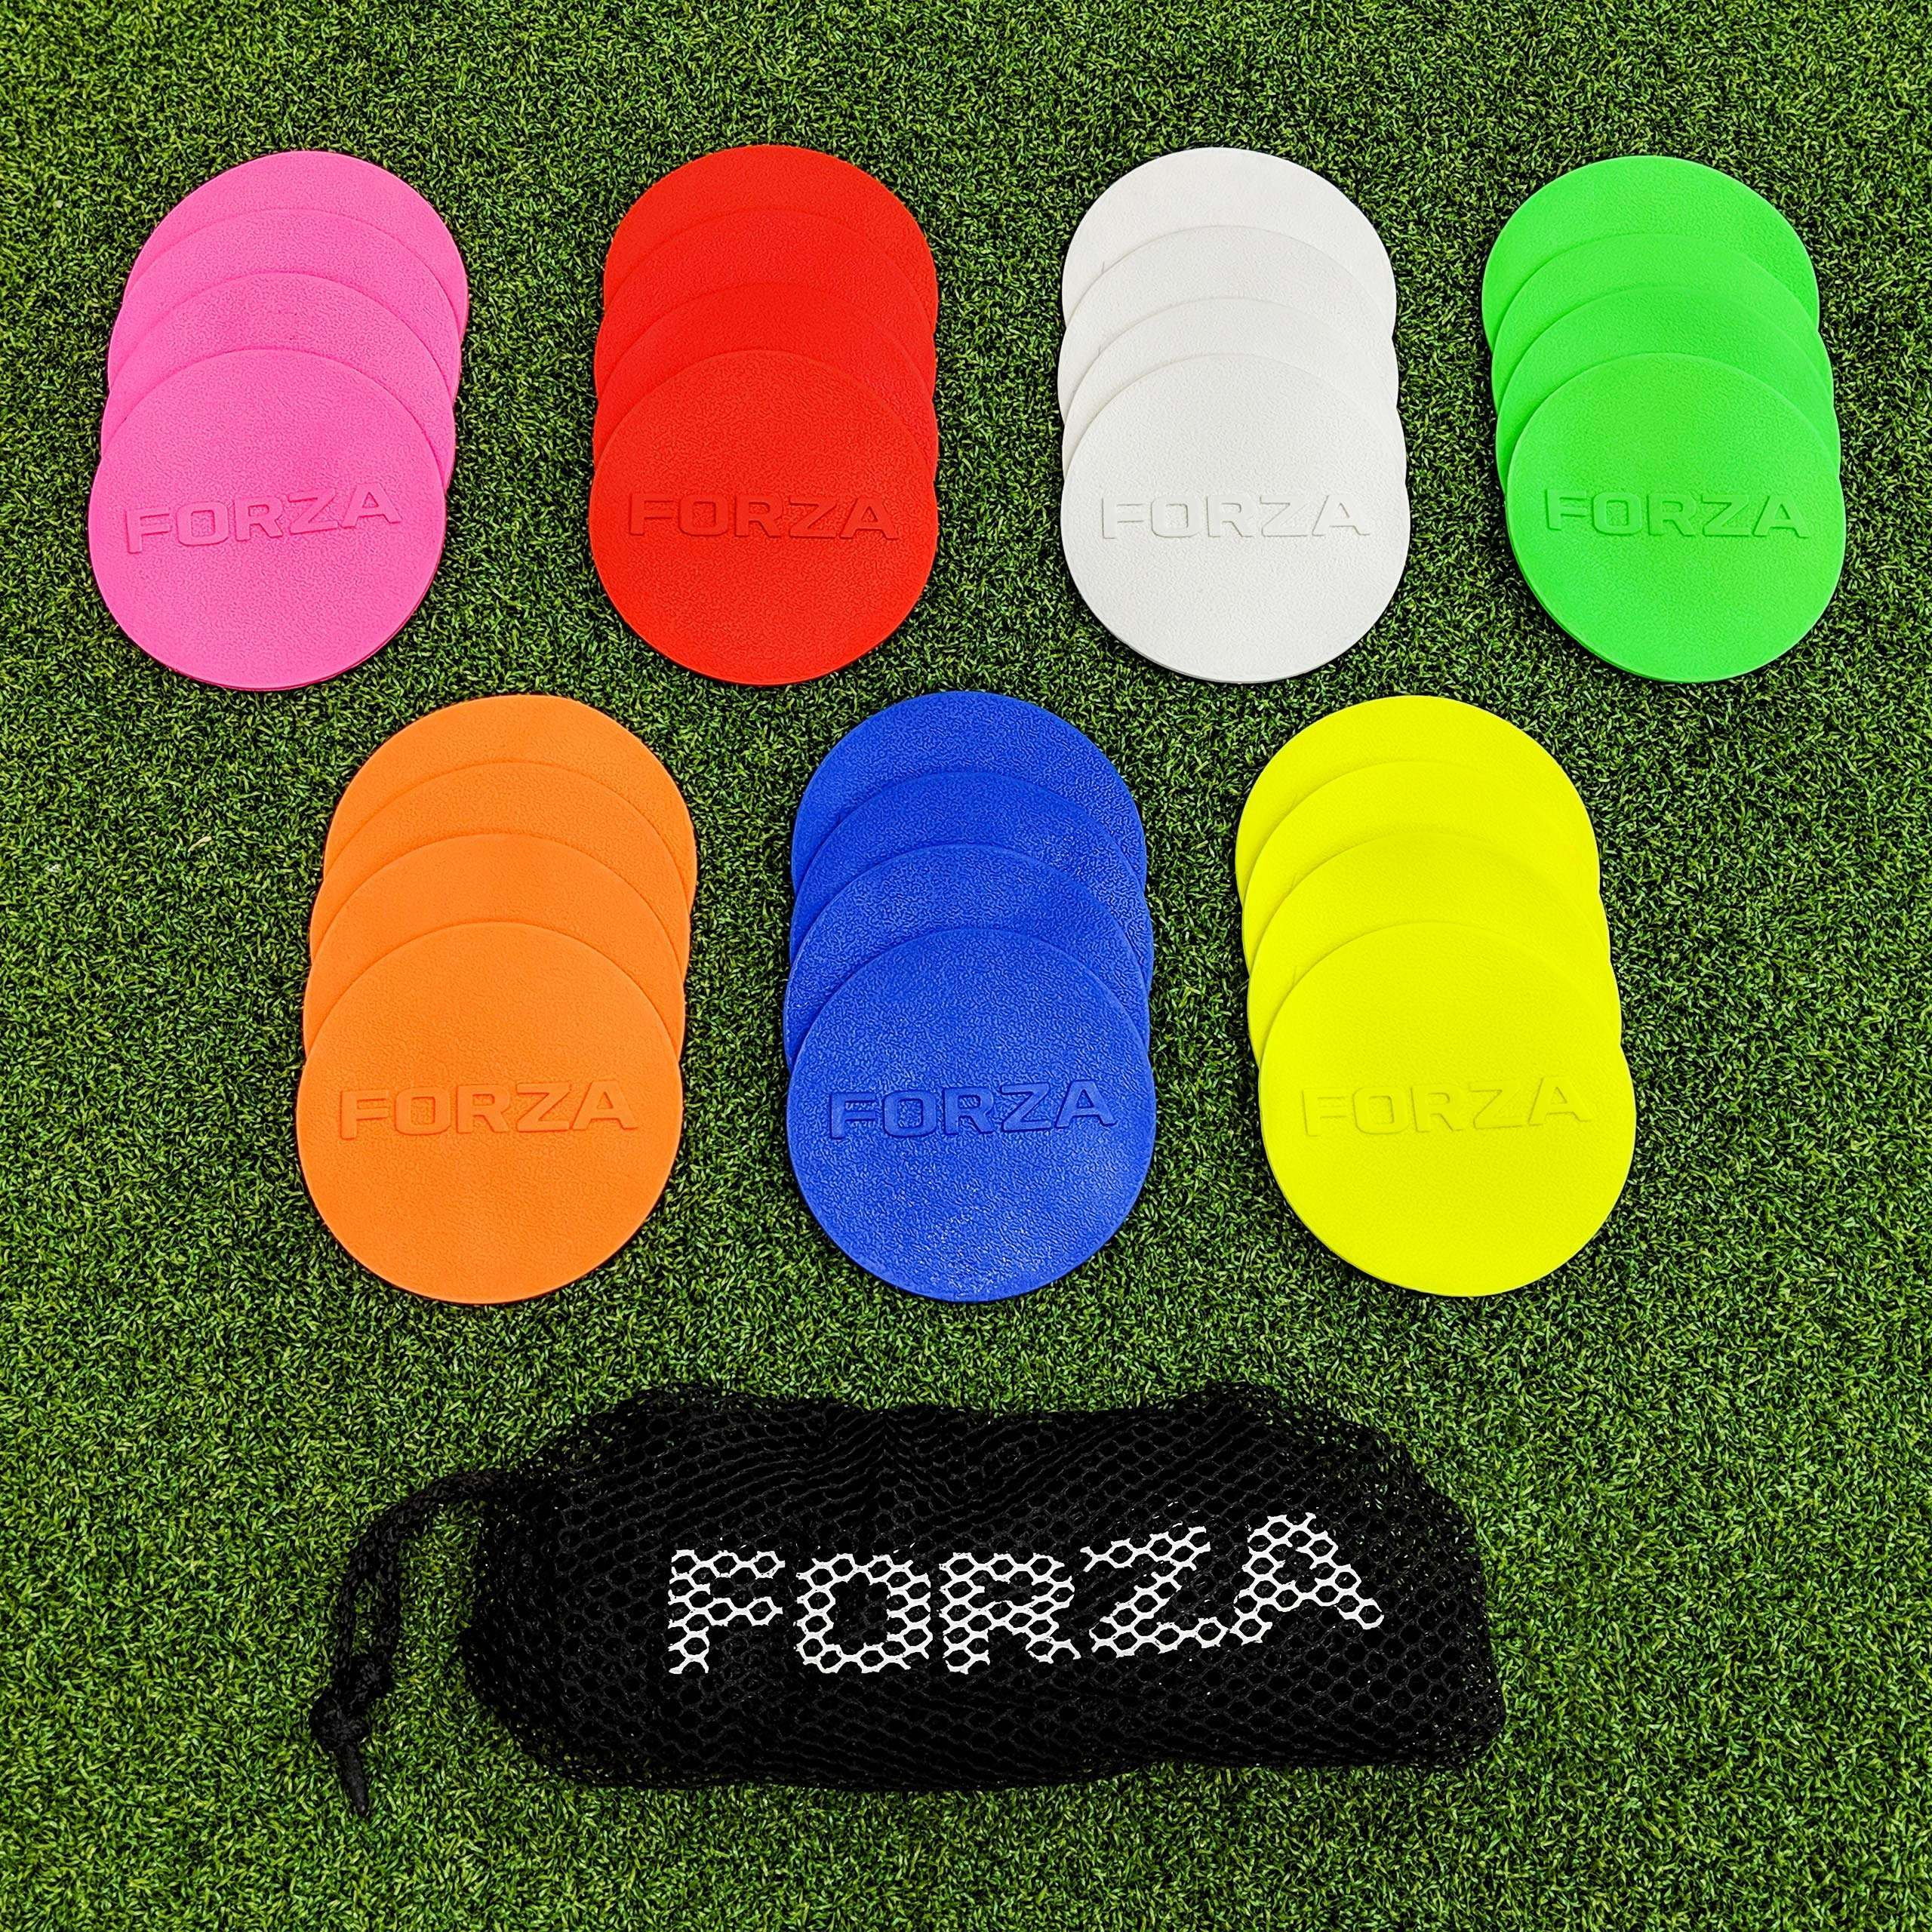 FORZA Mini Flat Disc Markers [All Colors]